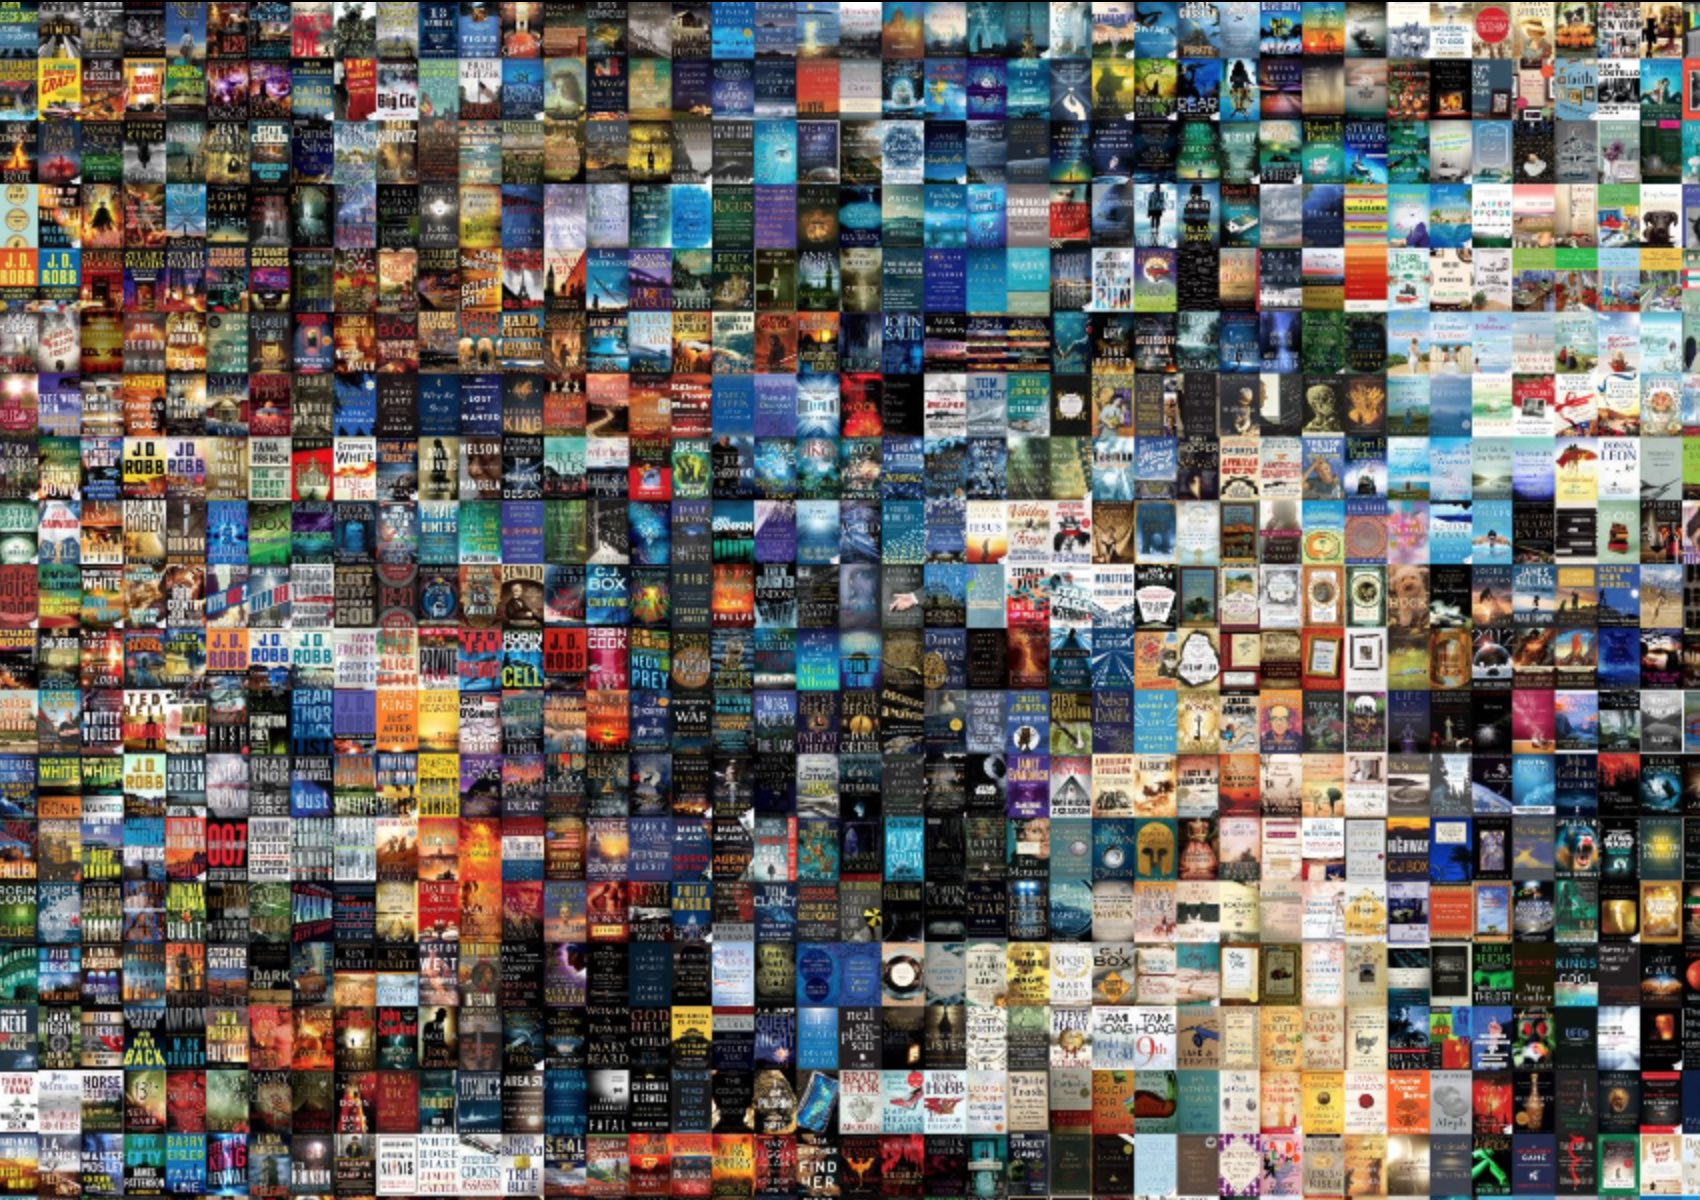 A grid of book covers